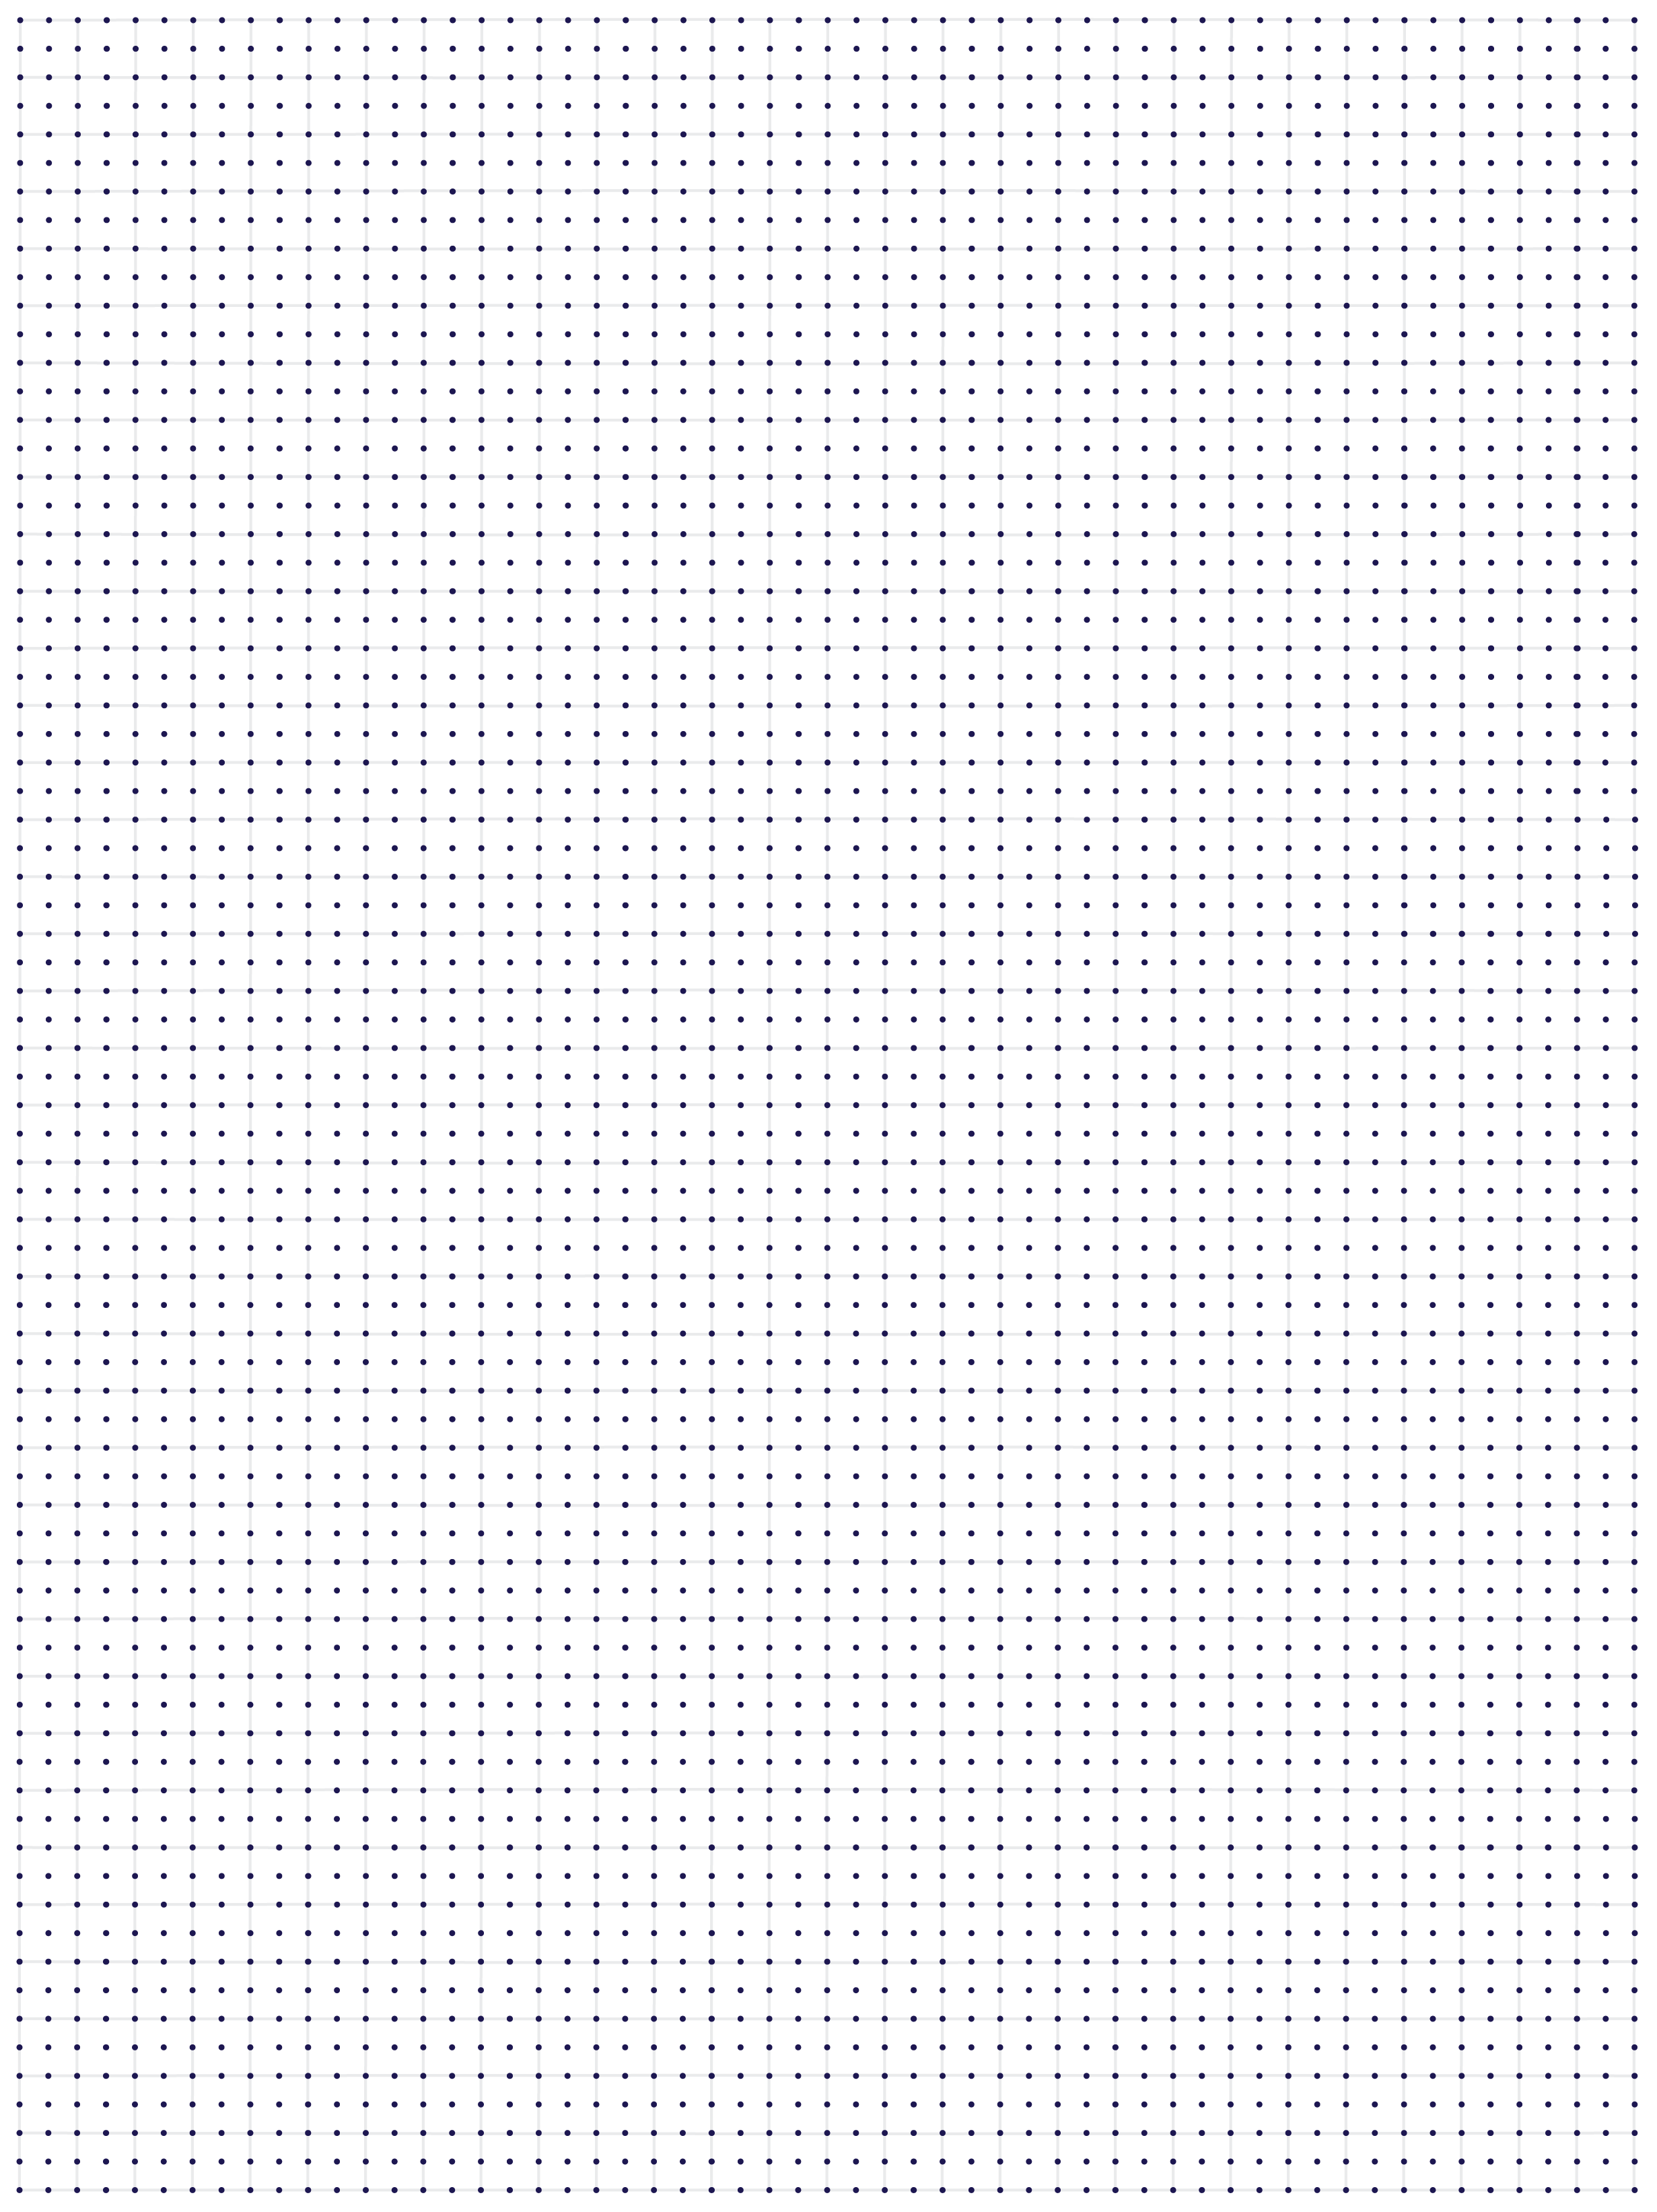 printable dot grid paper with background lines